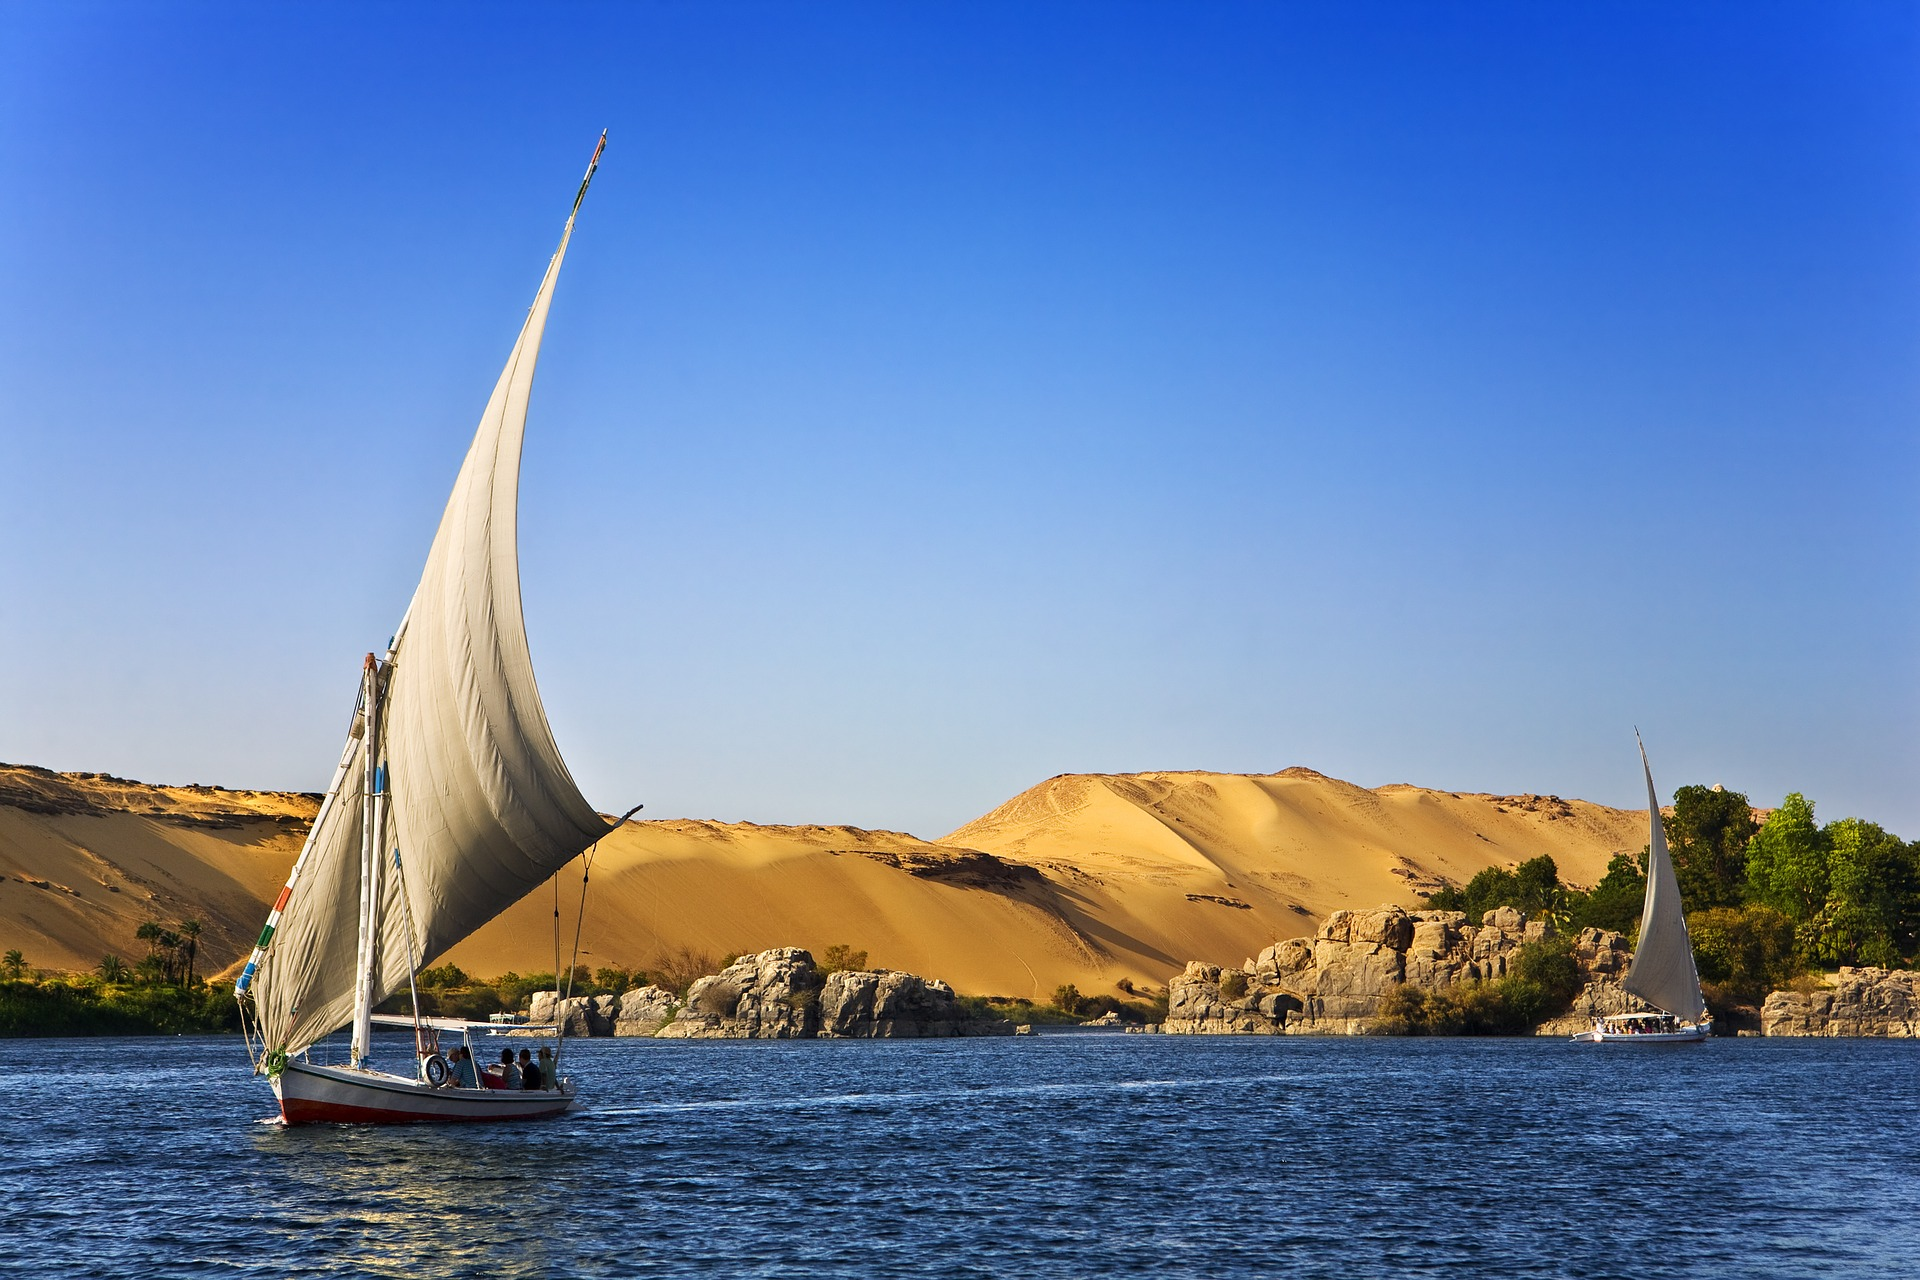 egypt-tour-packages-2637992_1920